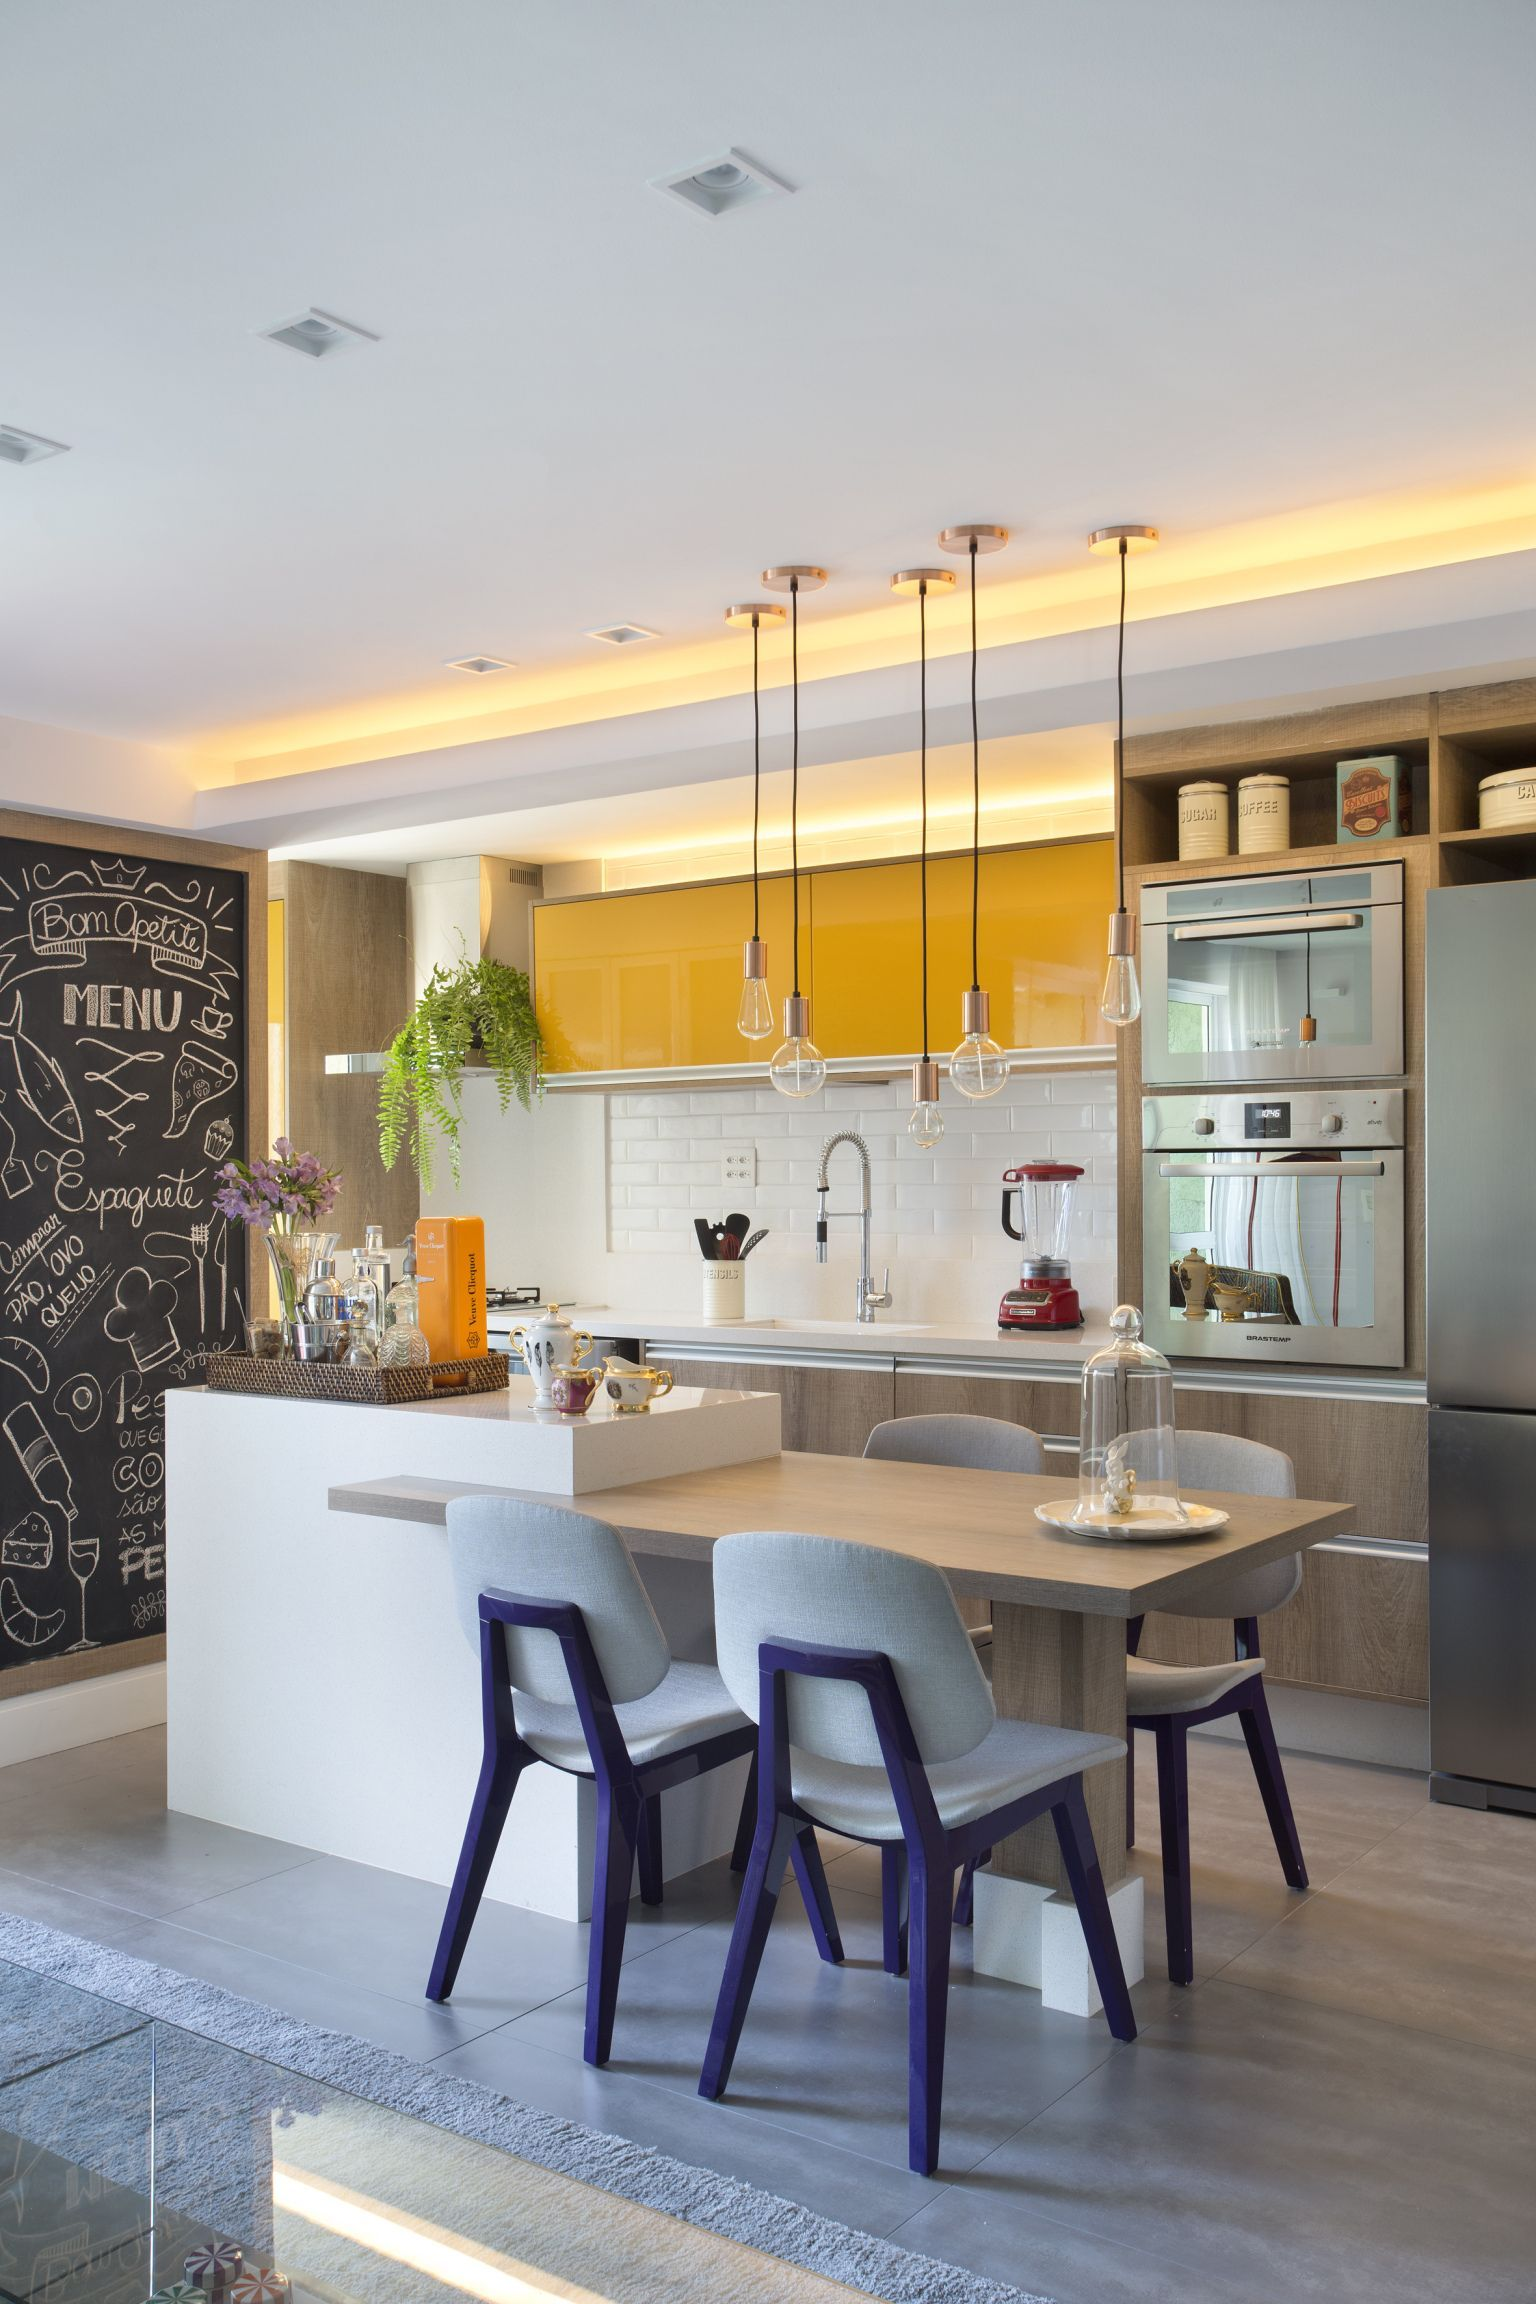 6 Modern Small Kitchen Ideas That Will Give a Big Impact ...